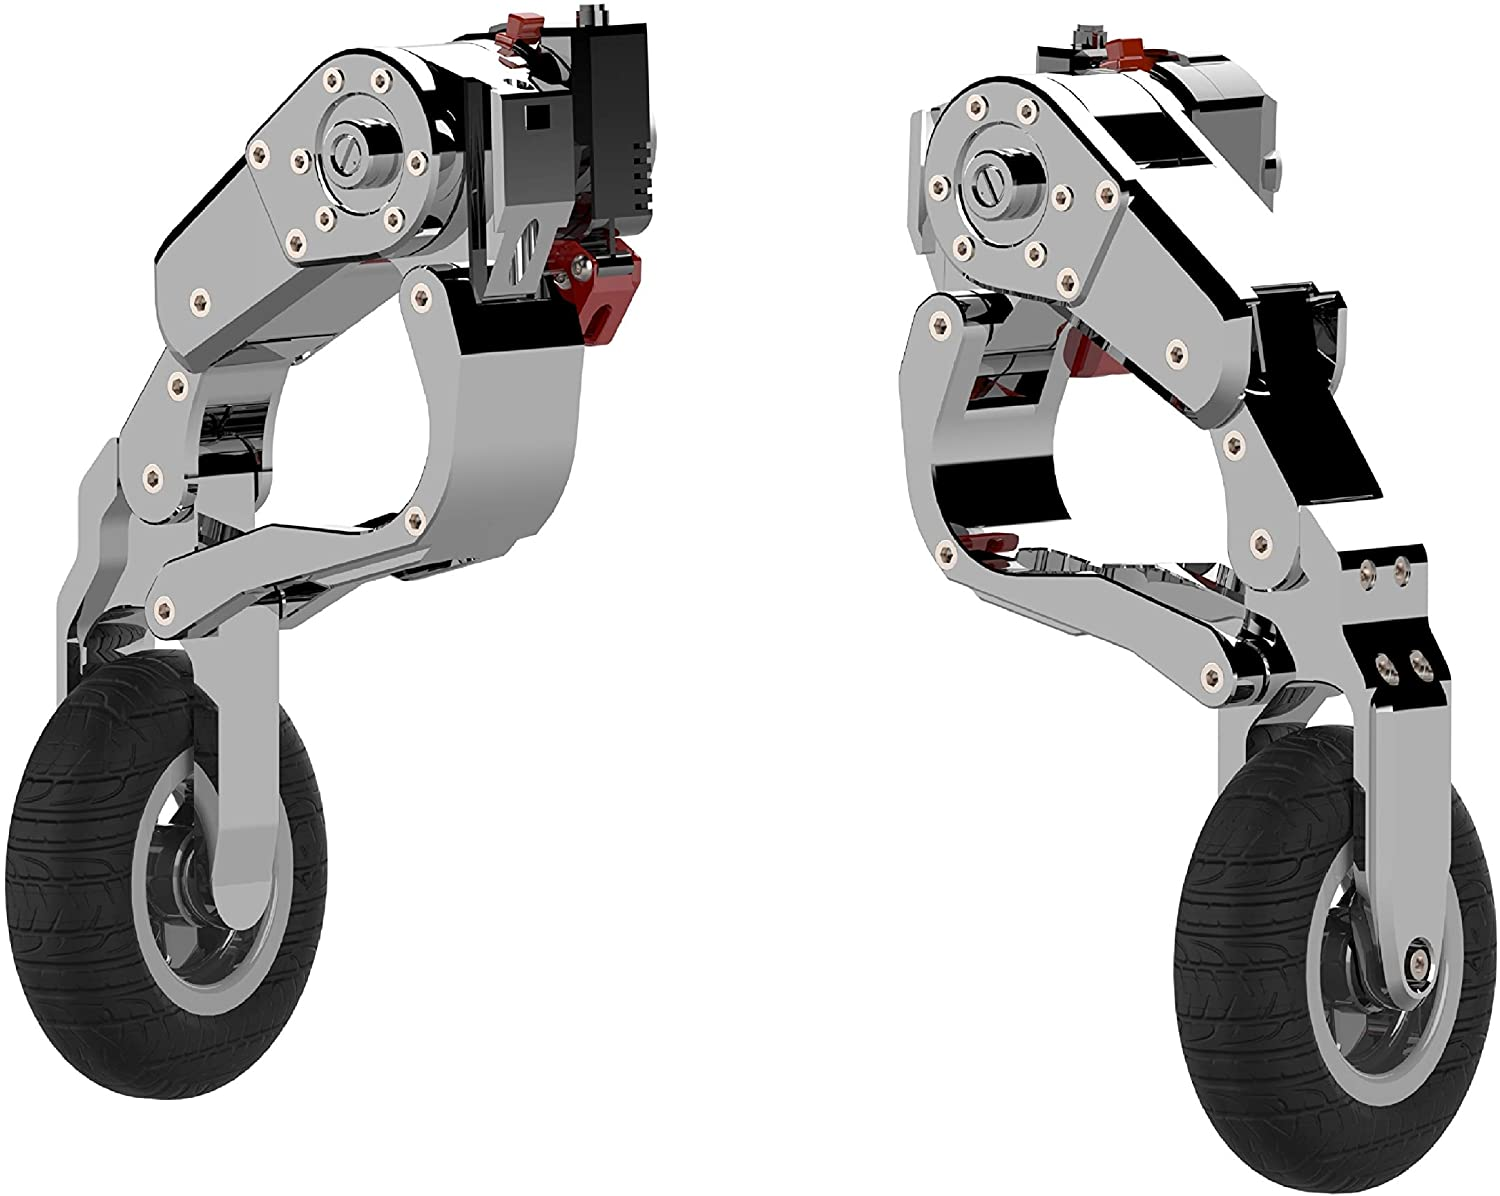 LANDING GEAR MOTORCYCLE LEG UP STAND ACCESSORIES WHEELS